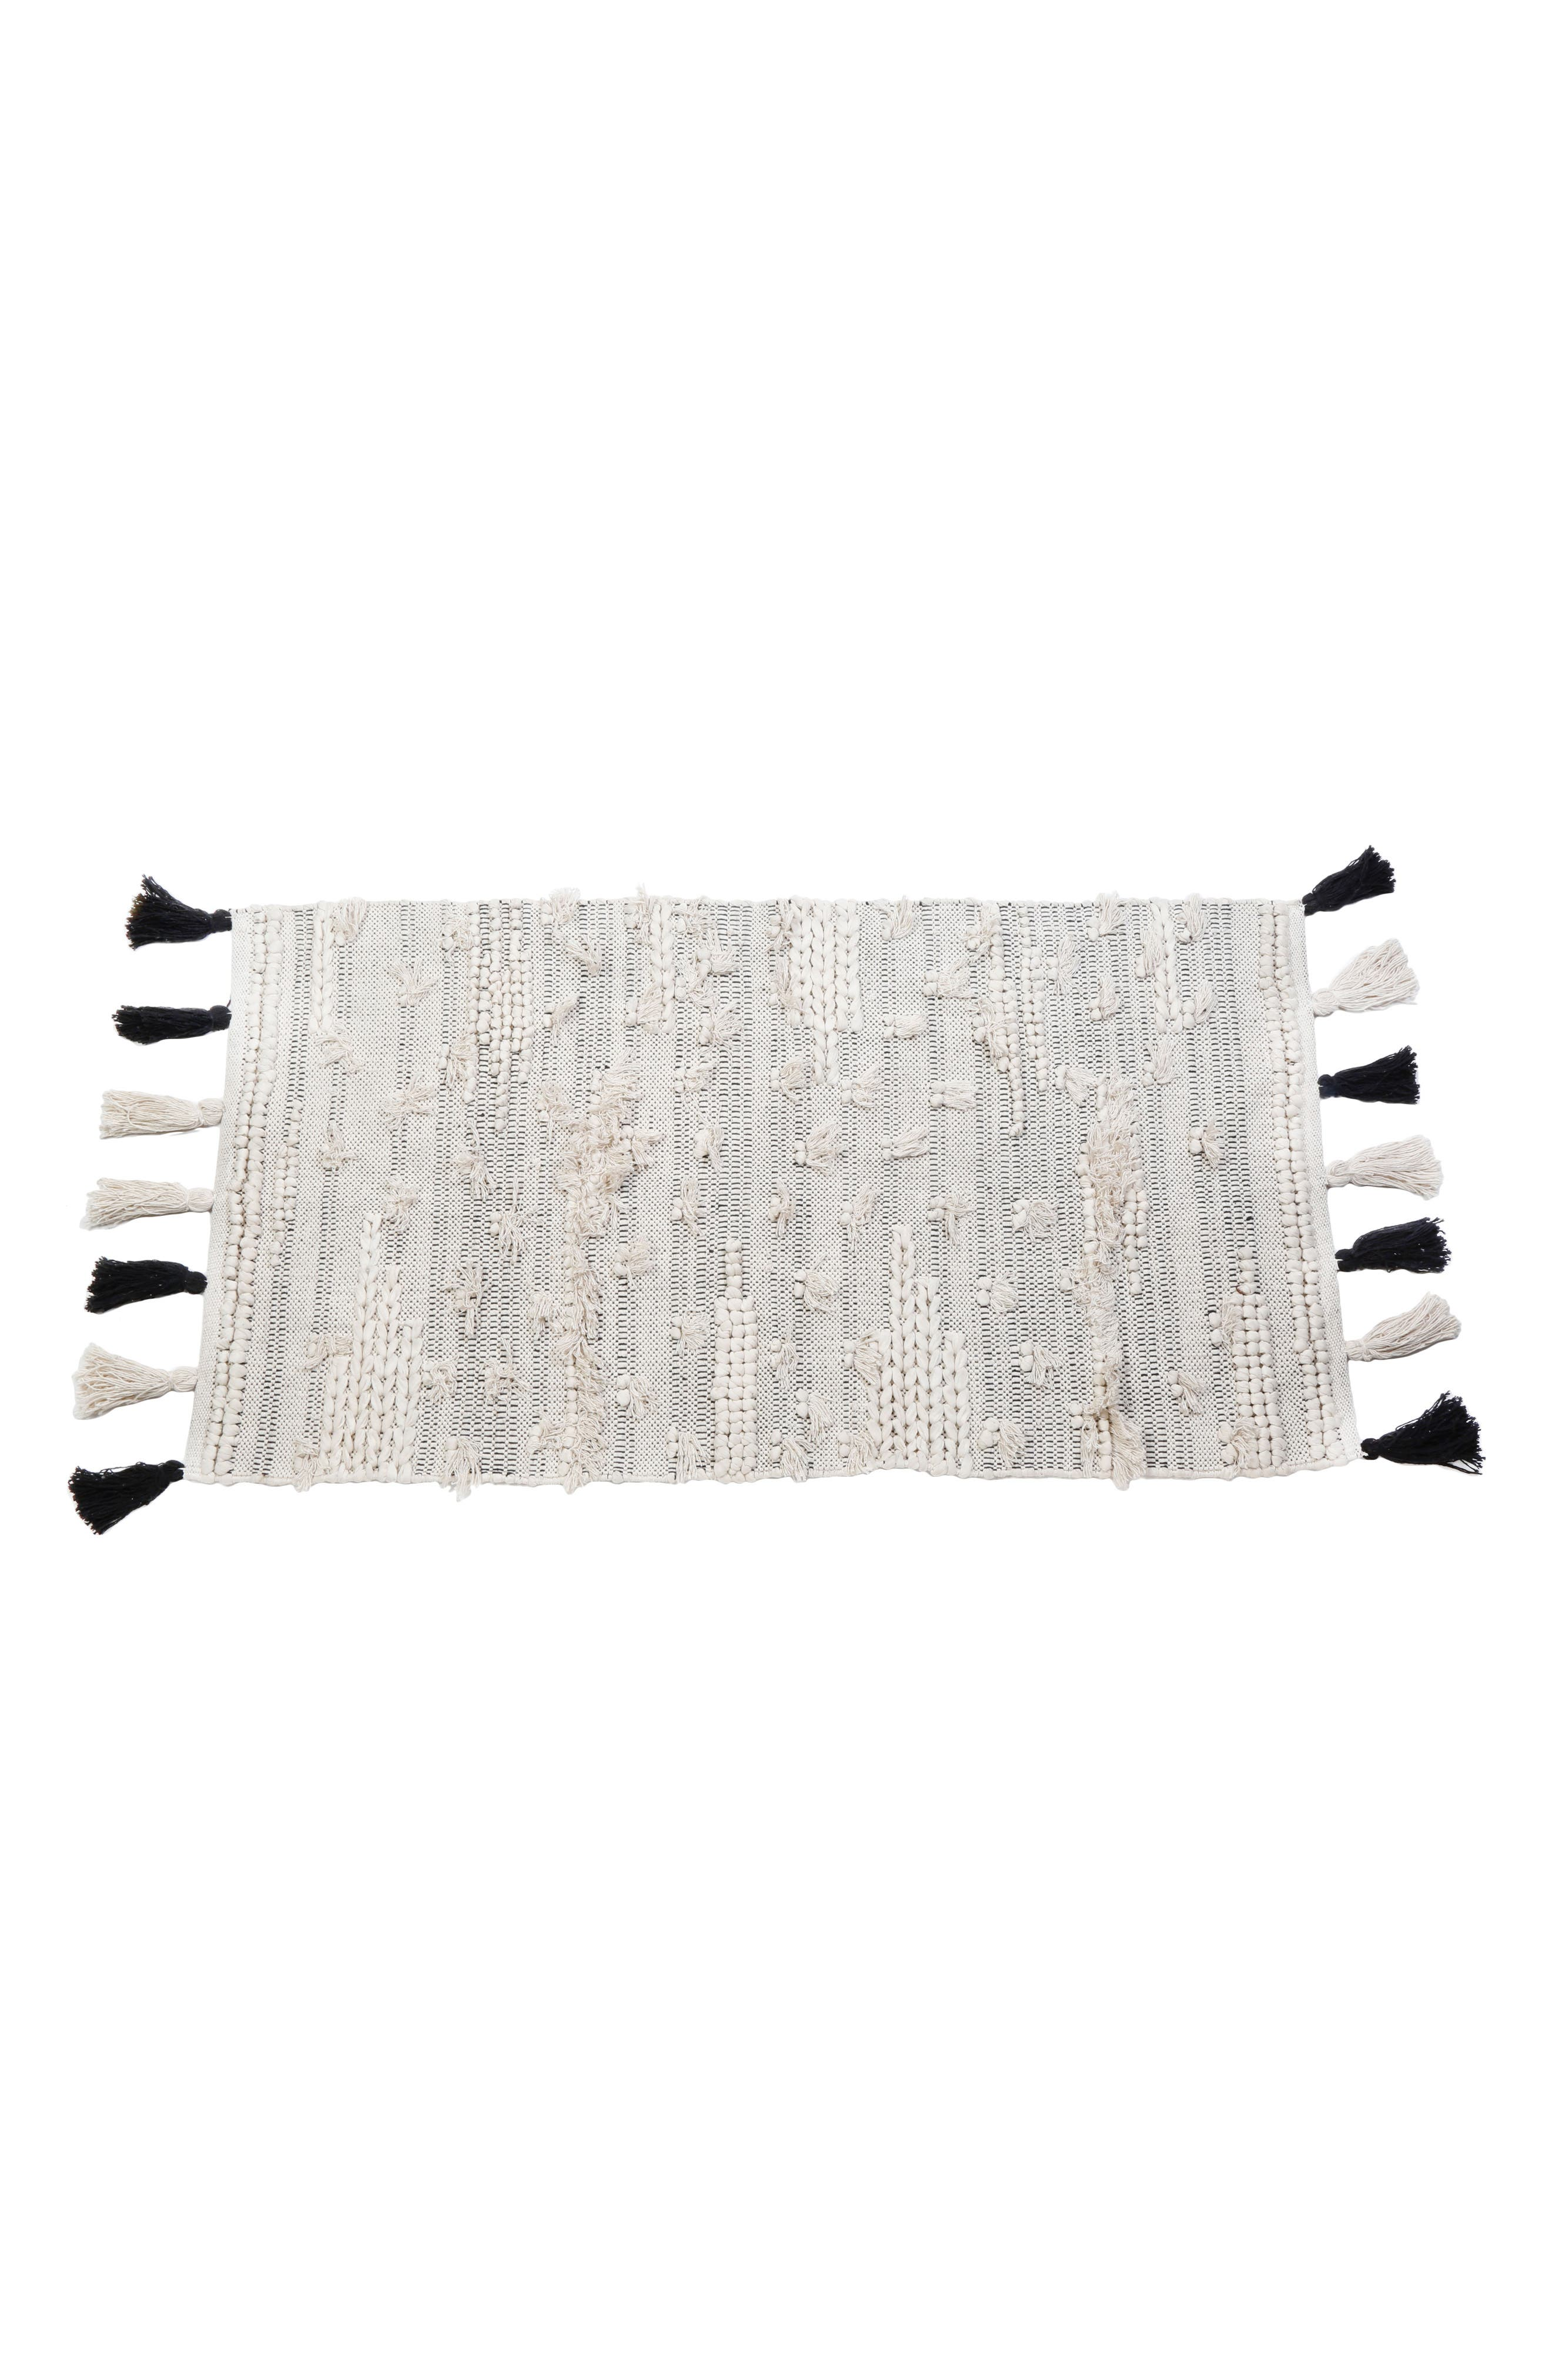 Quincy Rug,                             Main thumbnail 1, color,                             900